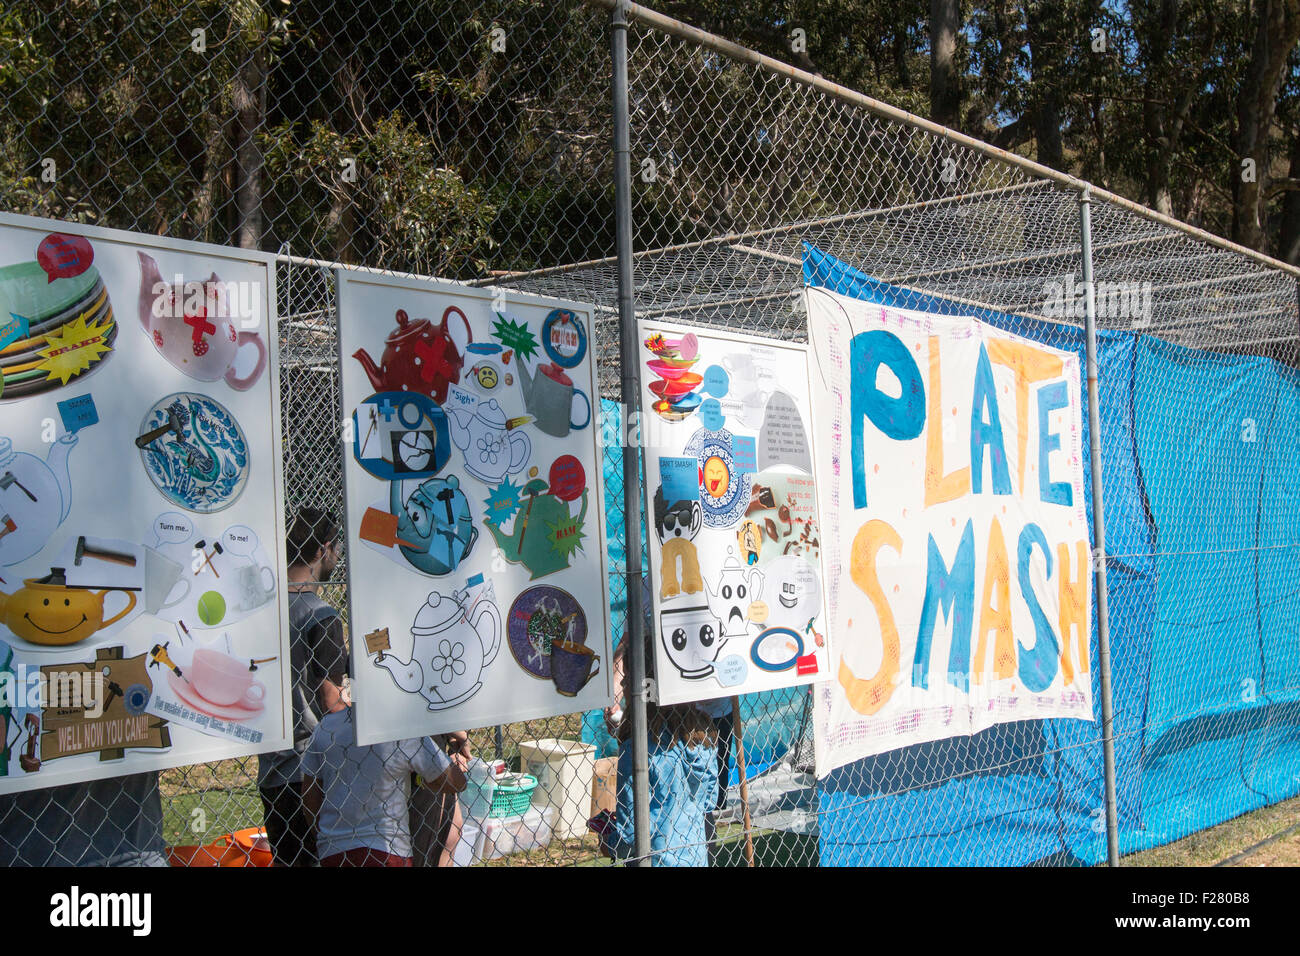 plate smashing Sydney primary school hosts the local community fete fair to raise funds for the school,Avalon,Sydney,Australia - Stock Image